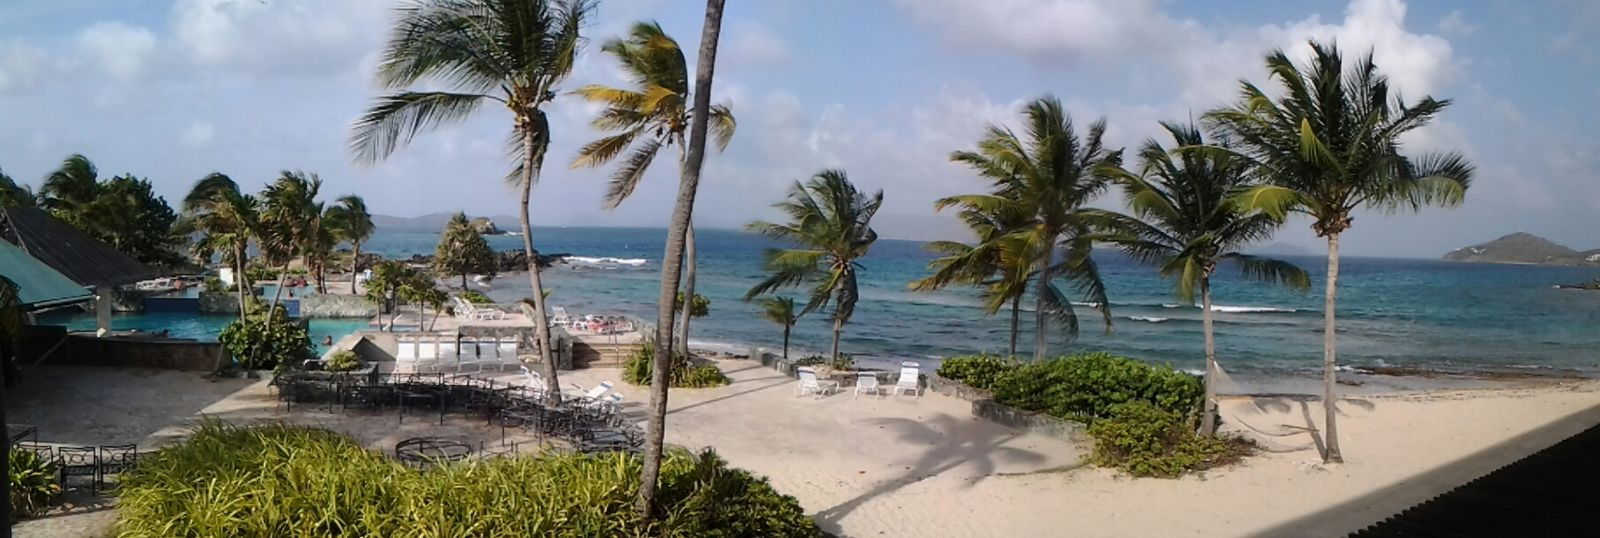 View from my room on vacation in St. Thomas USVI. Holiday Beautiful Surroundings Beach Beautiful Day Life Is A Beach Relaxing Palm Trees Vacation Islands